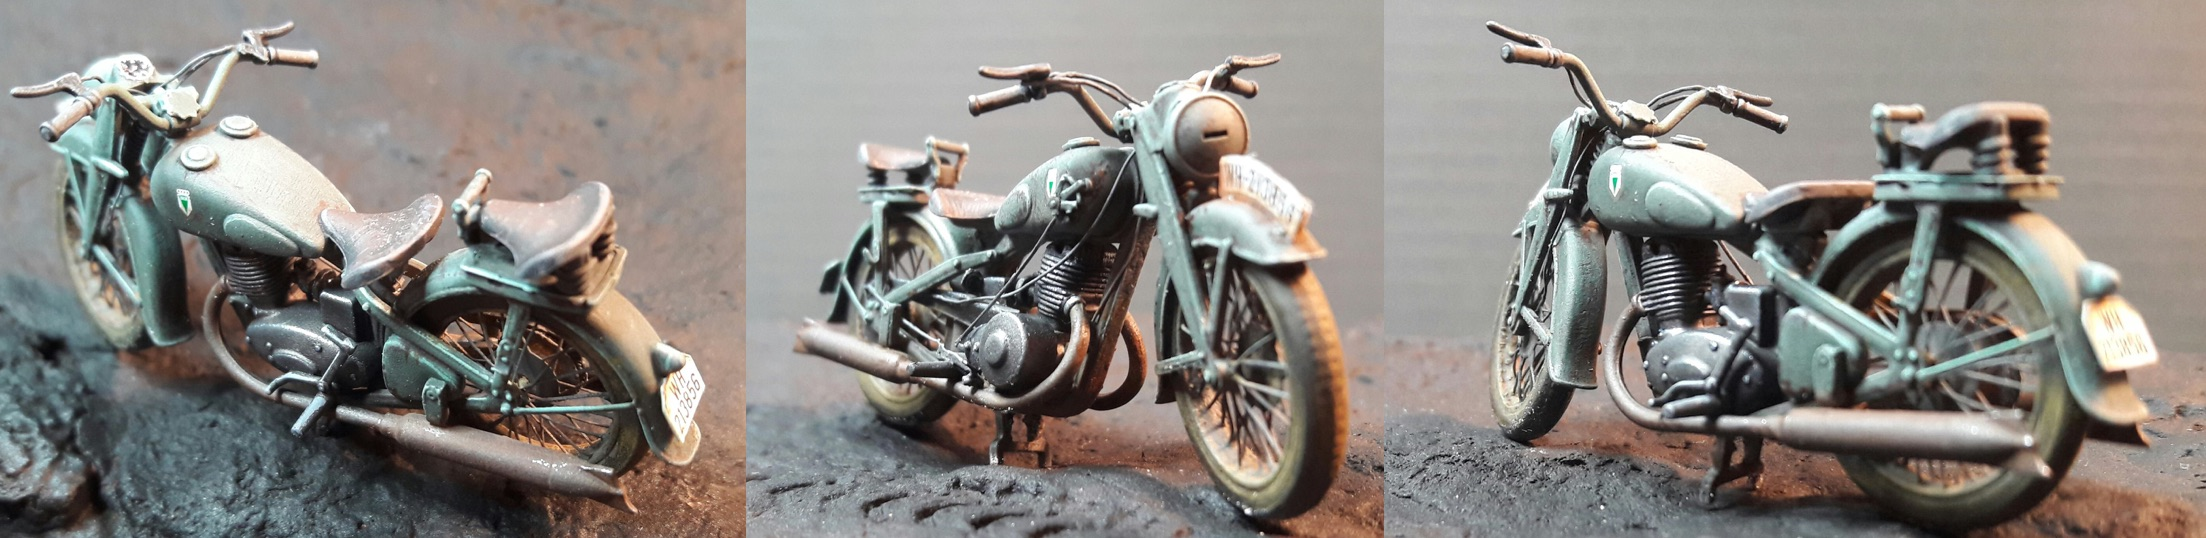 Zündapp KS750 - Sidecar - Great Wall Hobby + figurines Alpine - 1/35 - Page 5 336592DKW350